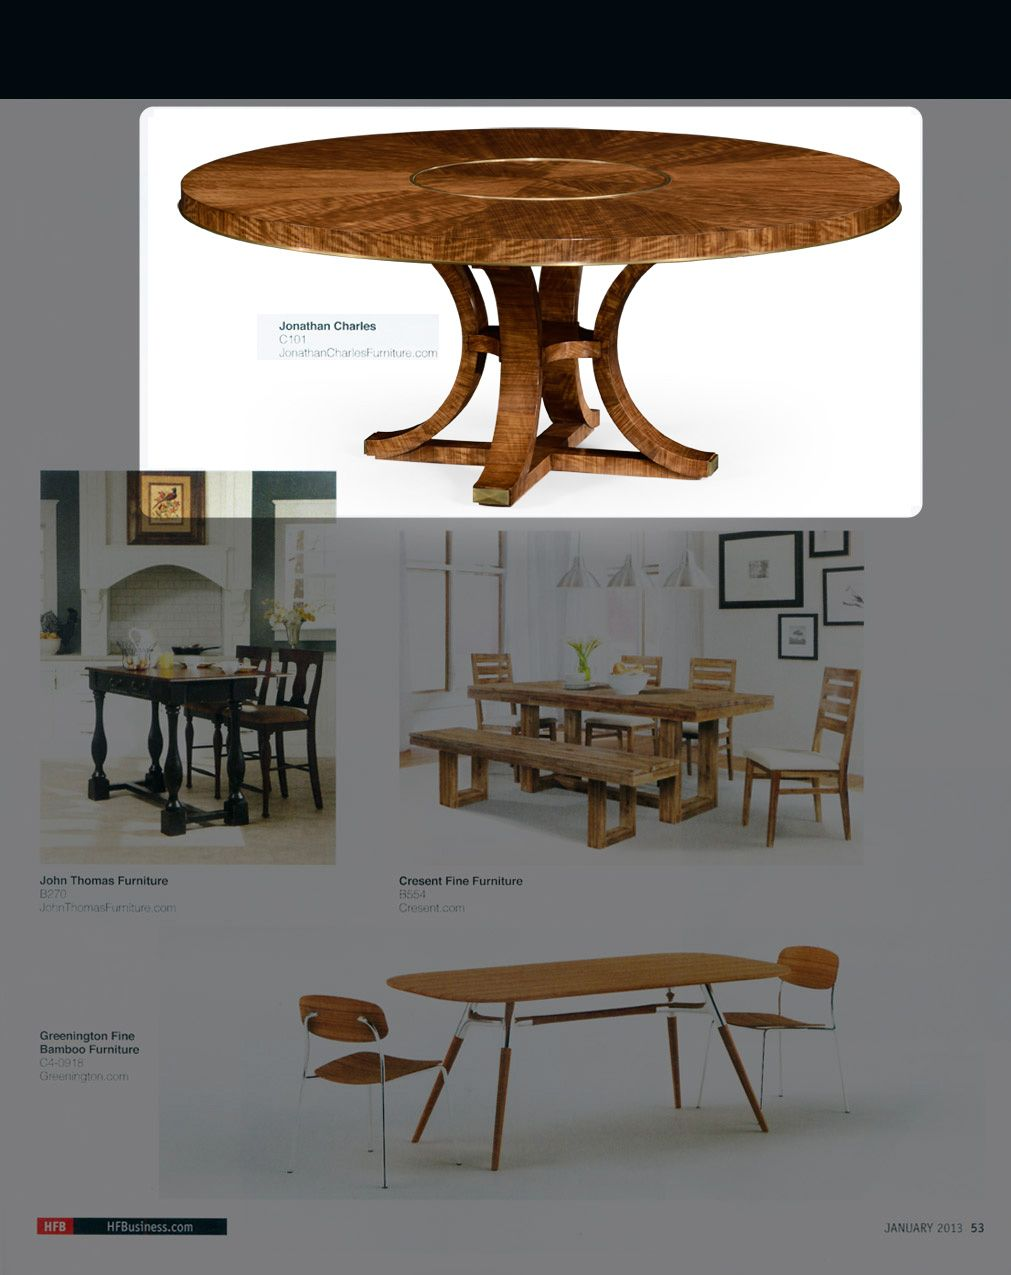 Home Furniture Business January 2013 With Images Wooden Dining Room Furniture Furniture Wooden Dining Tables